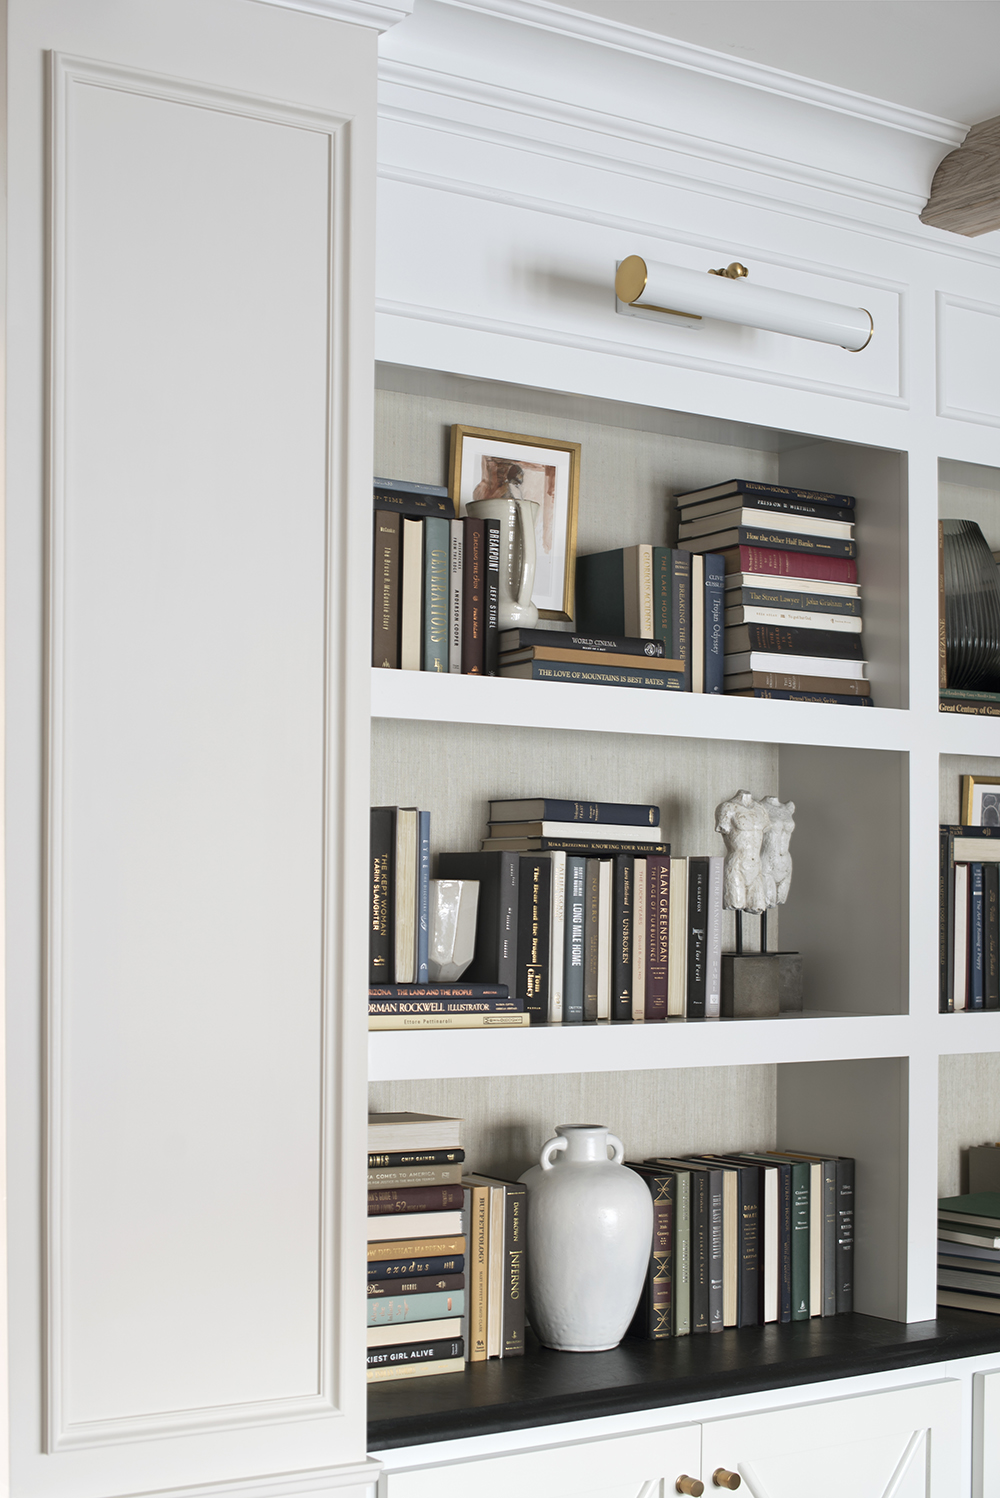 10 Tips for Shelf Styling with Lots of Books - roomfortuesday.com